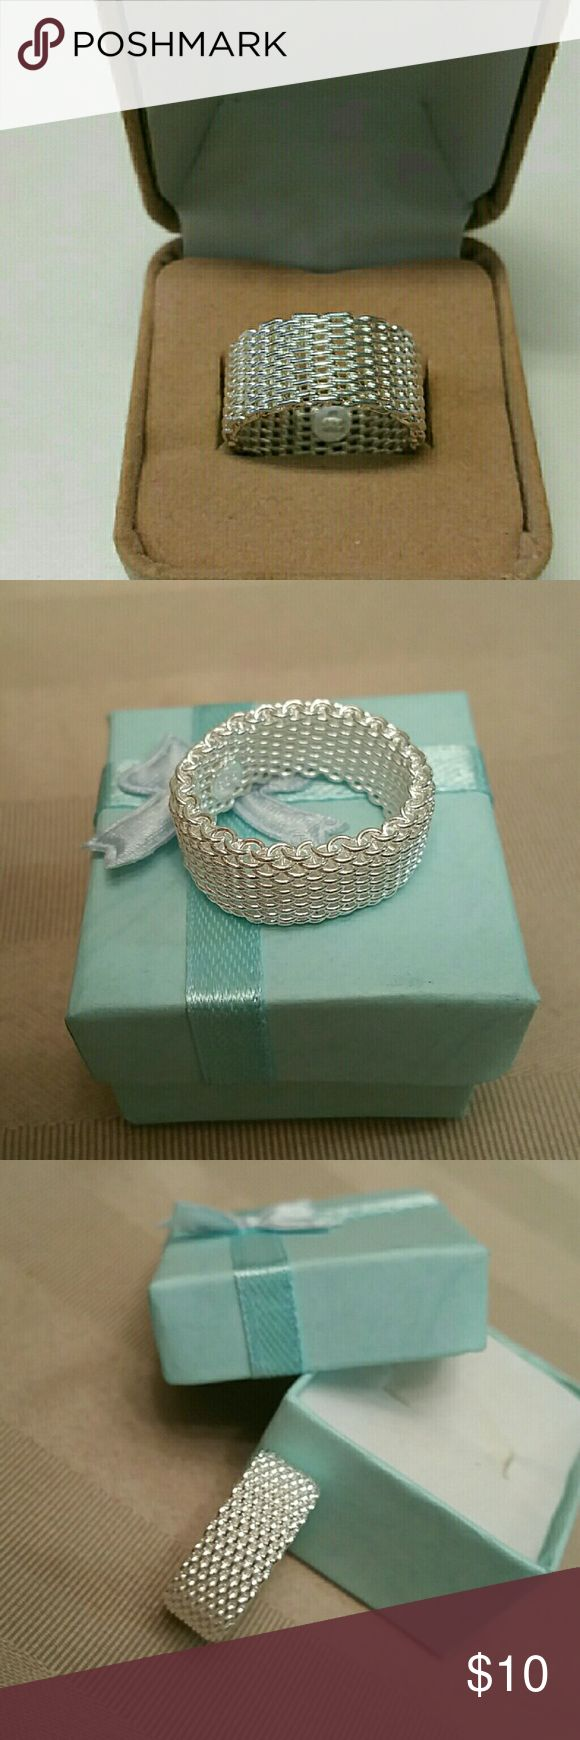 NWT STERLING SILVER MESH BAND 7 NWT ladies sterling silver (#925) mesh band. Uniquely designed and beautiful detailing makes this ring a eye catcher. Gift box included size 7 Jewelry